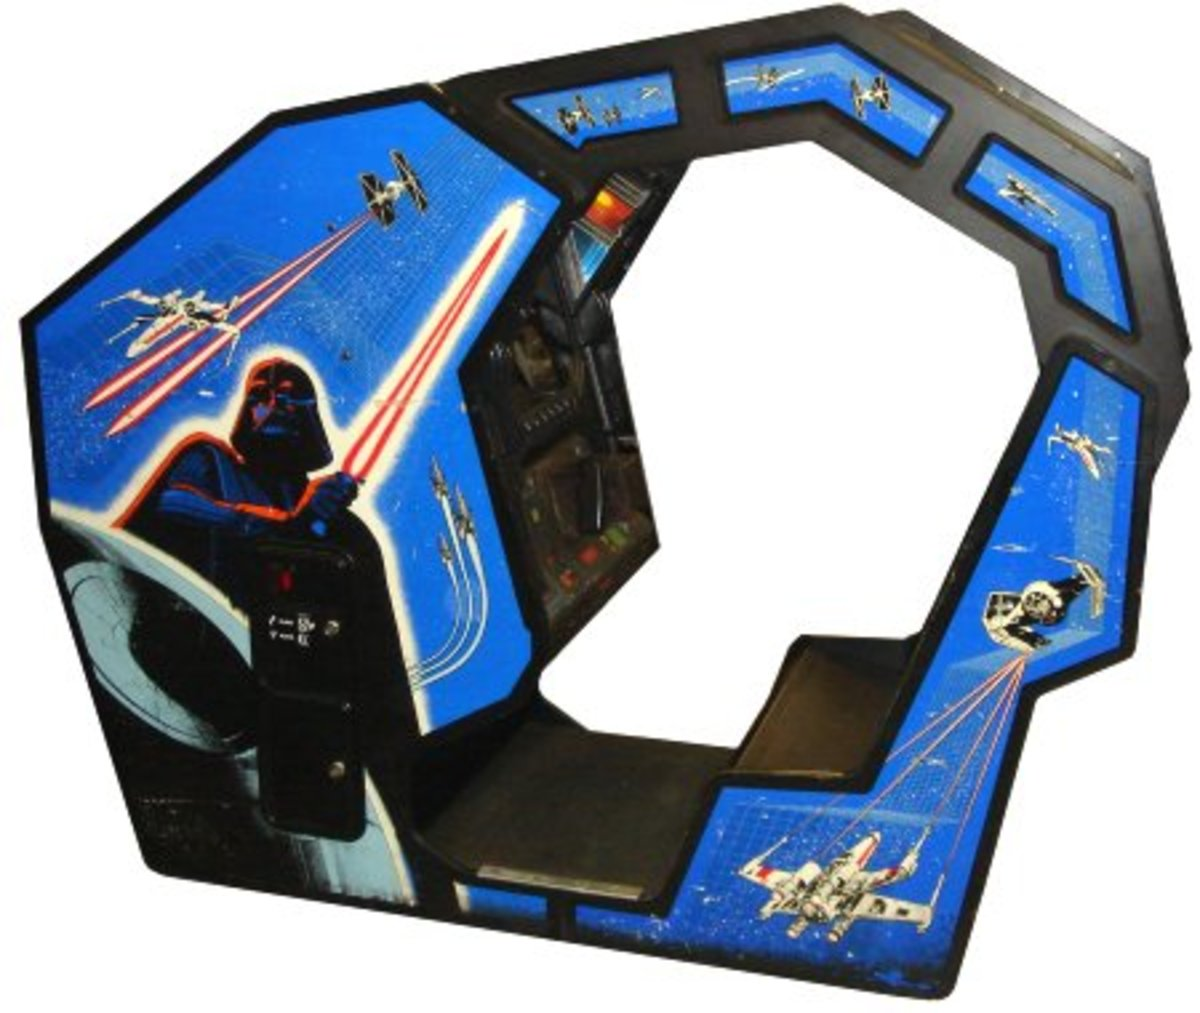 Star Wars Cockpit Cabinet